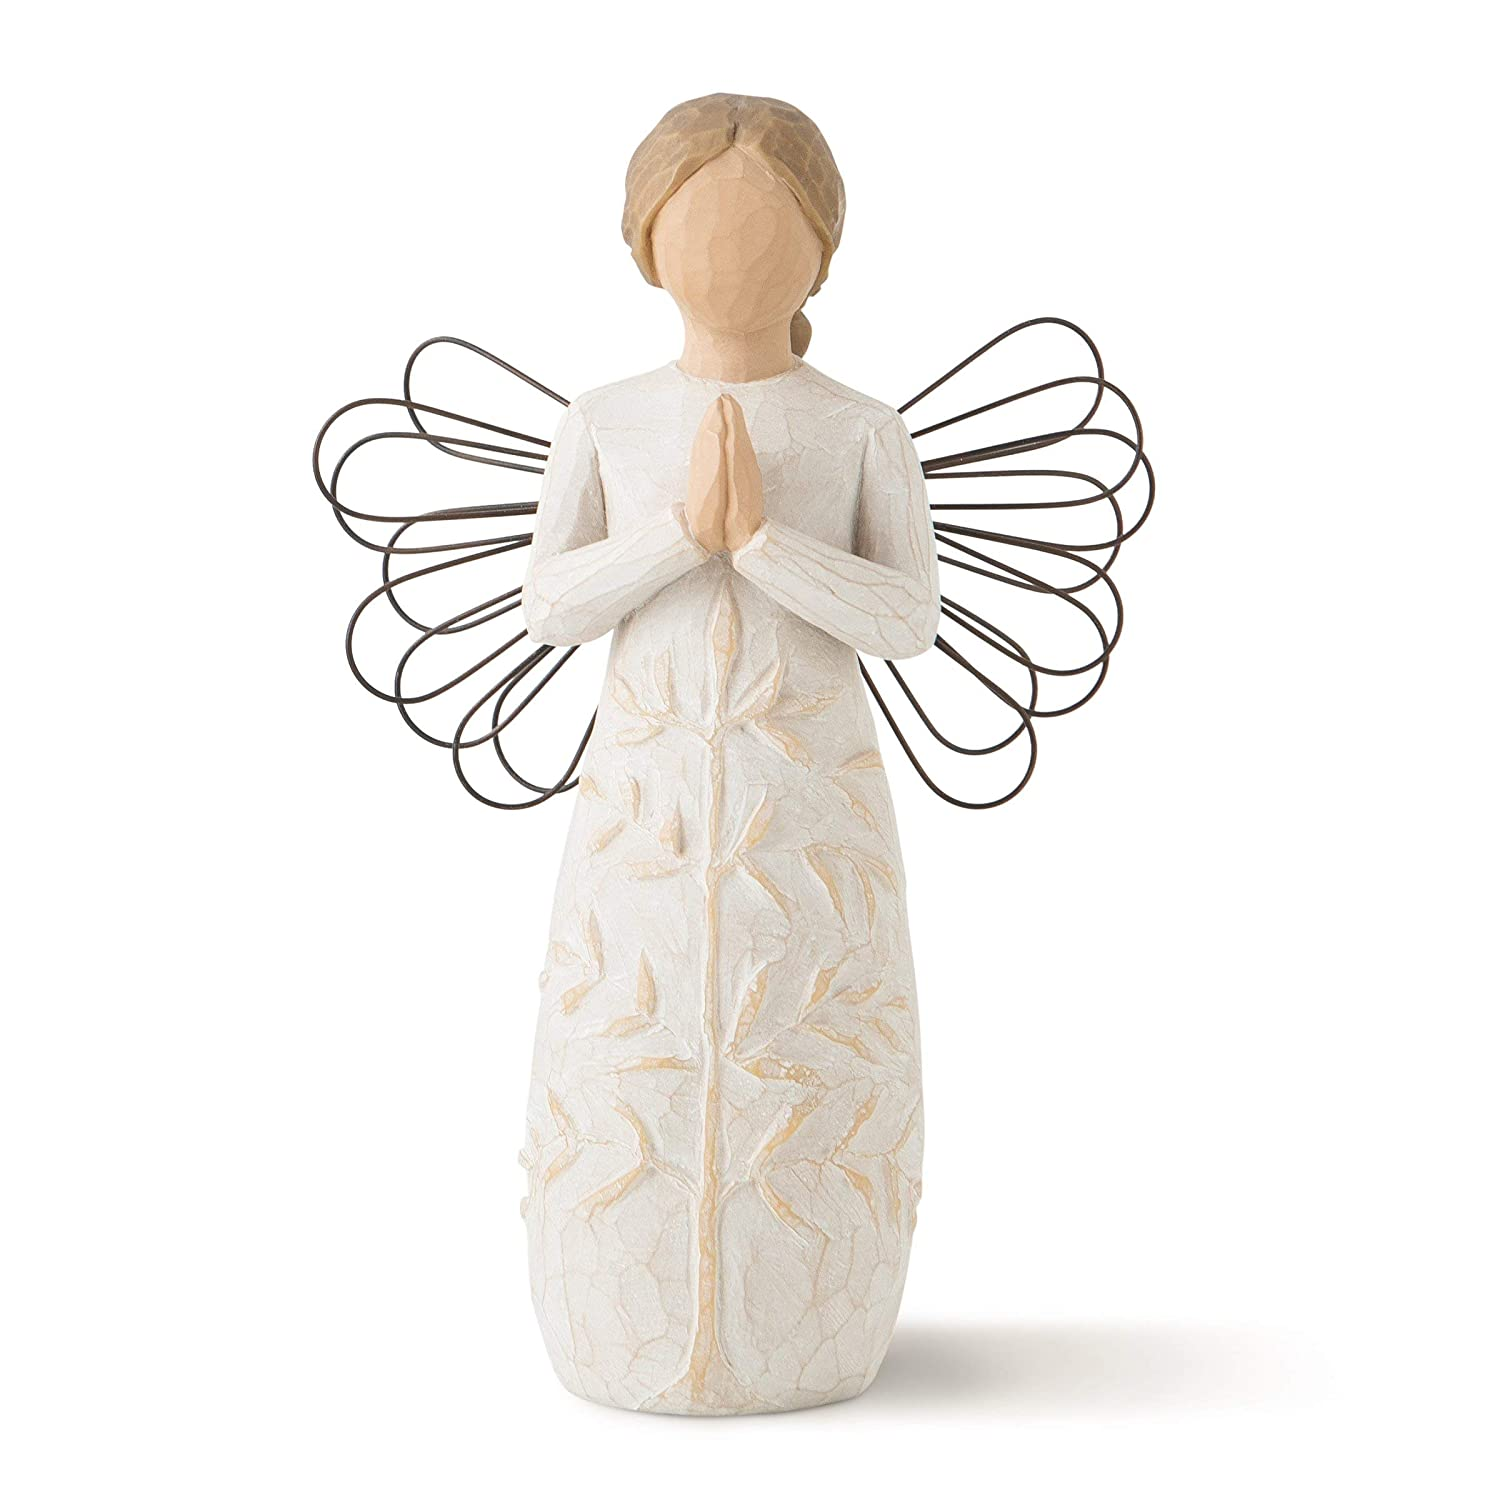 Willow Tree A Tree, A Prayer Angel Hand Painted Sculpture Figure